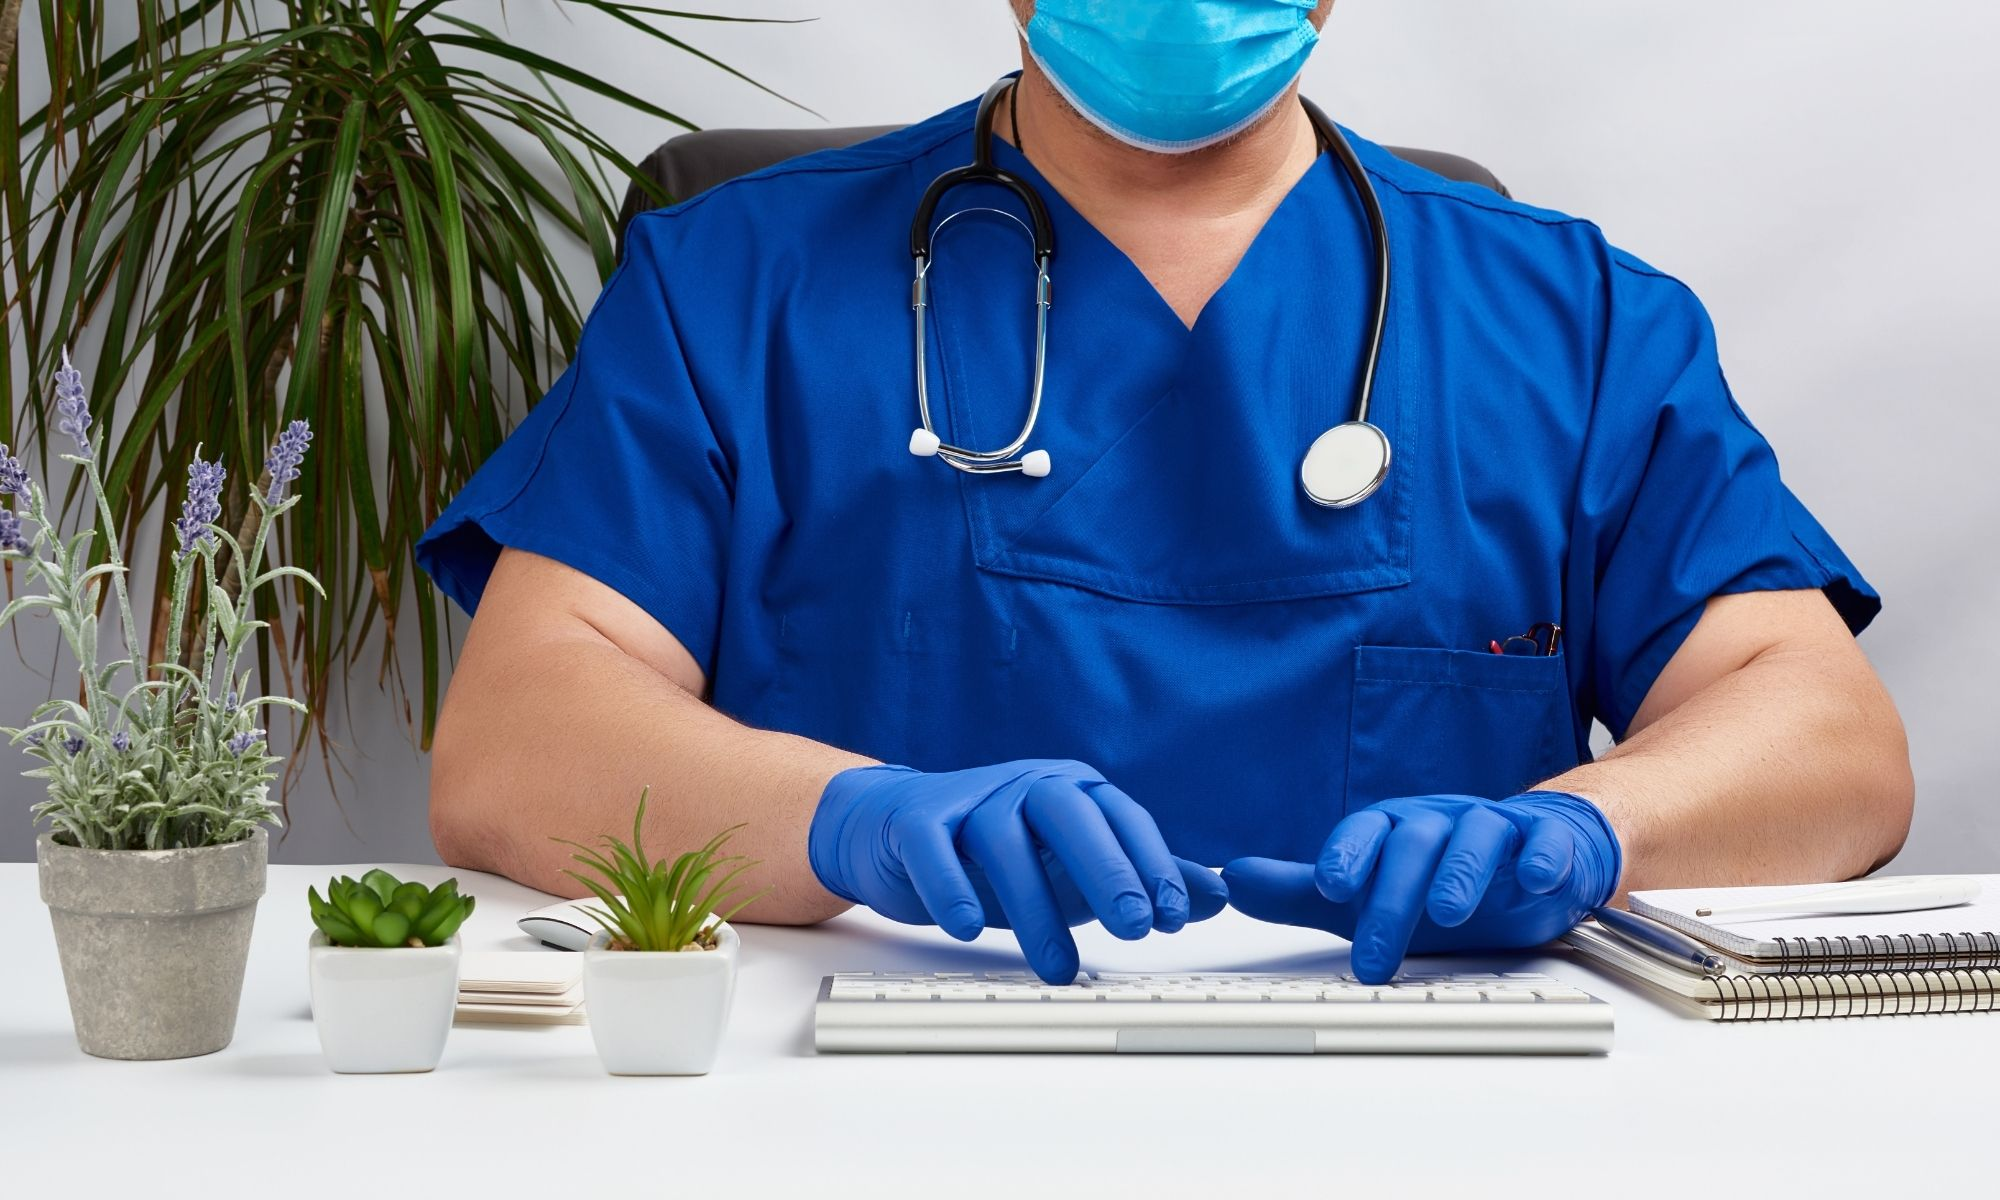 Clean up your act for a super sanitised practice